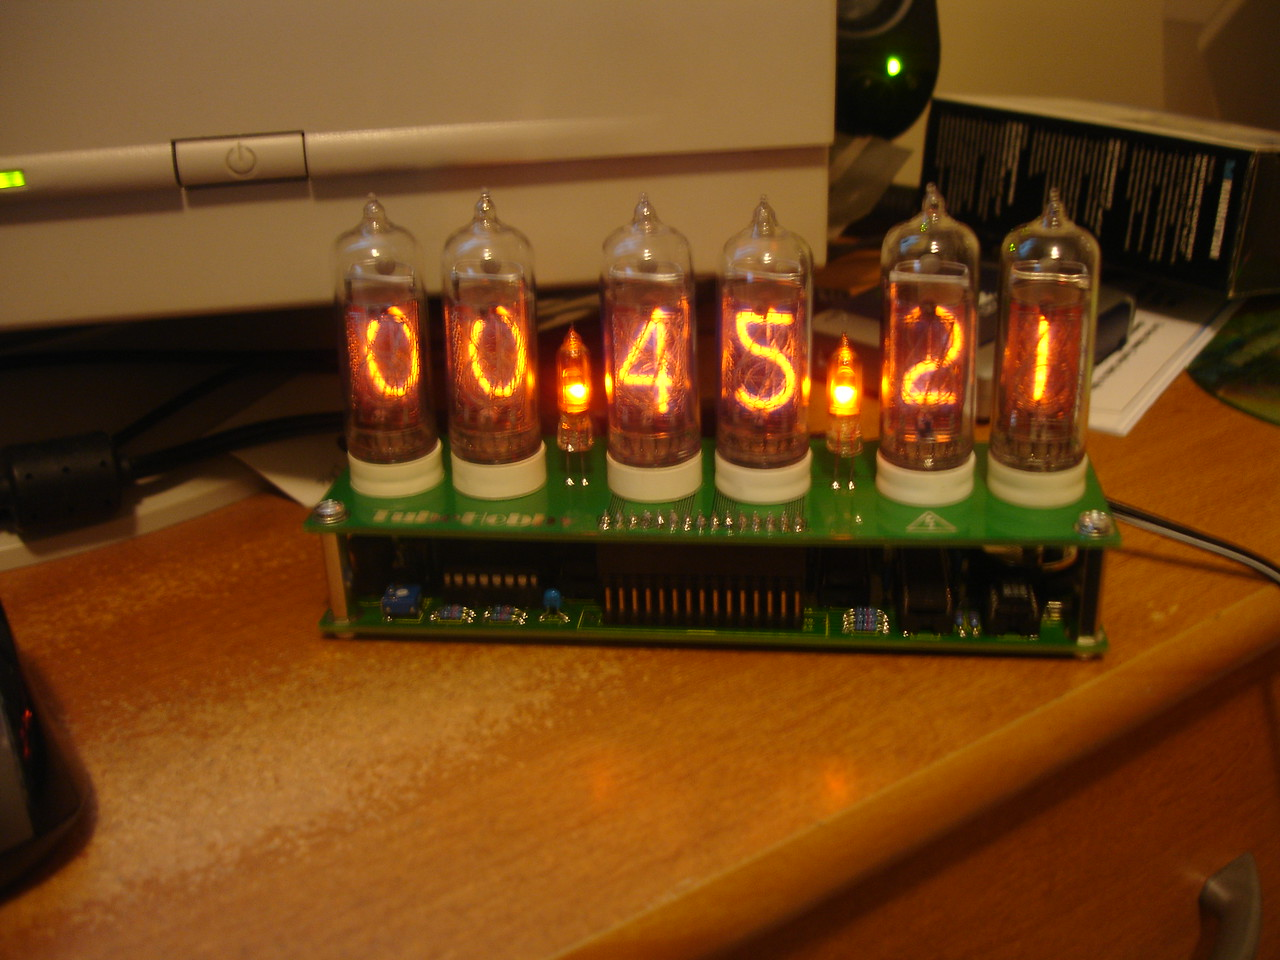 It works! (For some reason -- to save money, presumably -- Russian Nixie tubes use an upside-down '2' for the '5' digit)